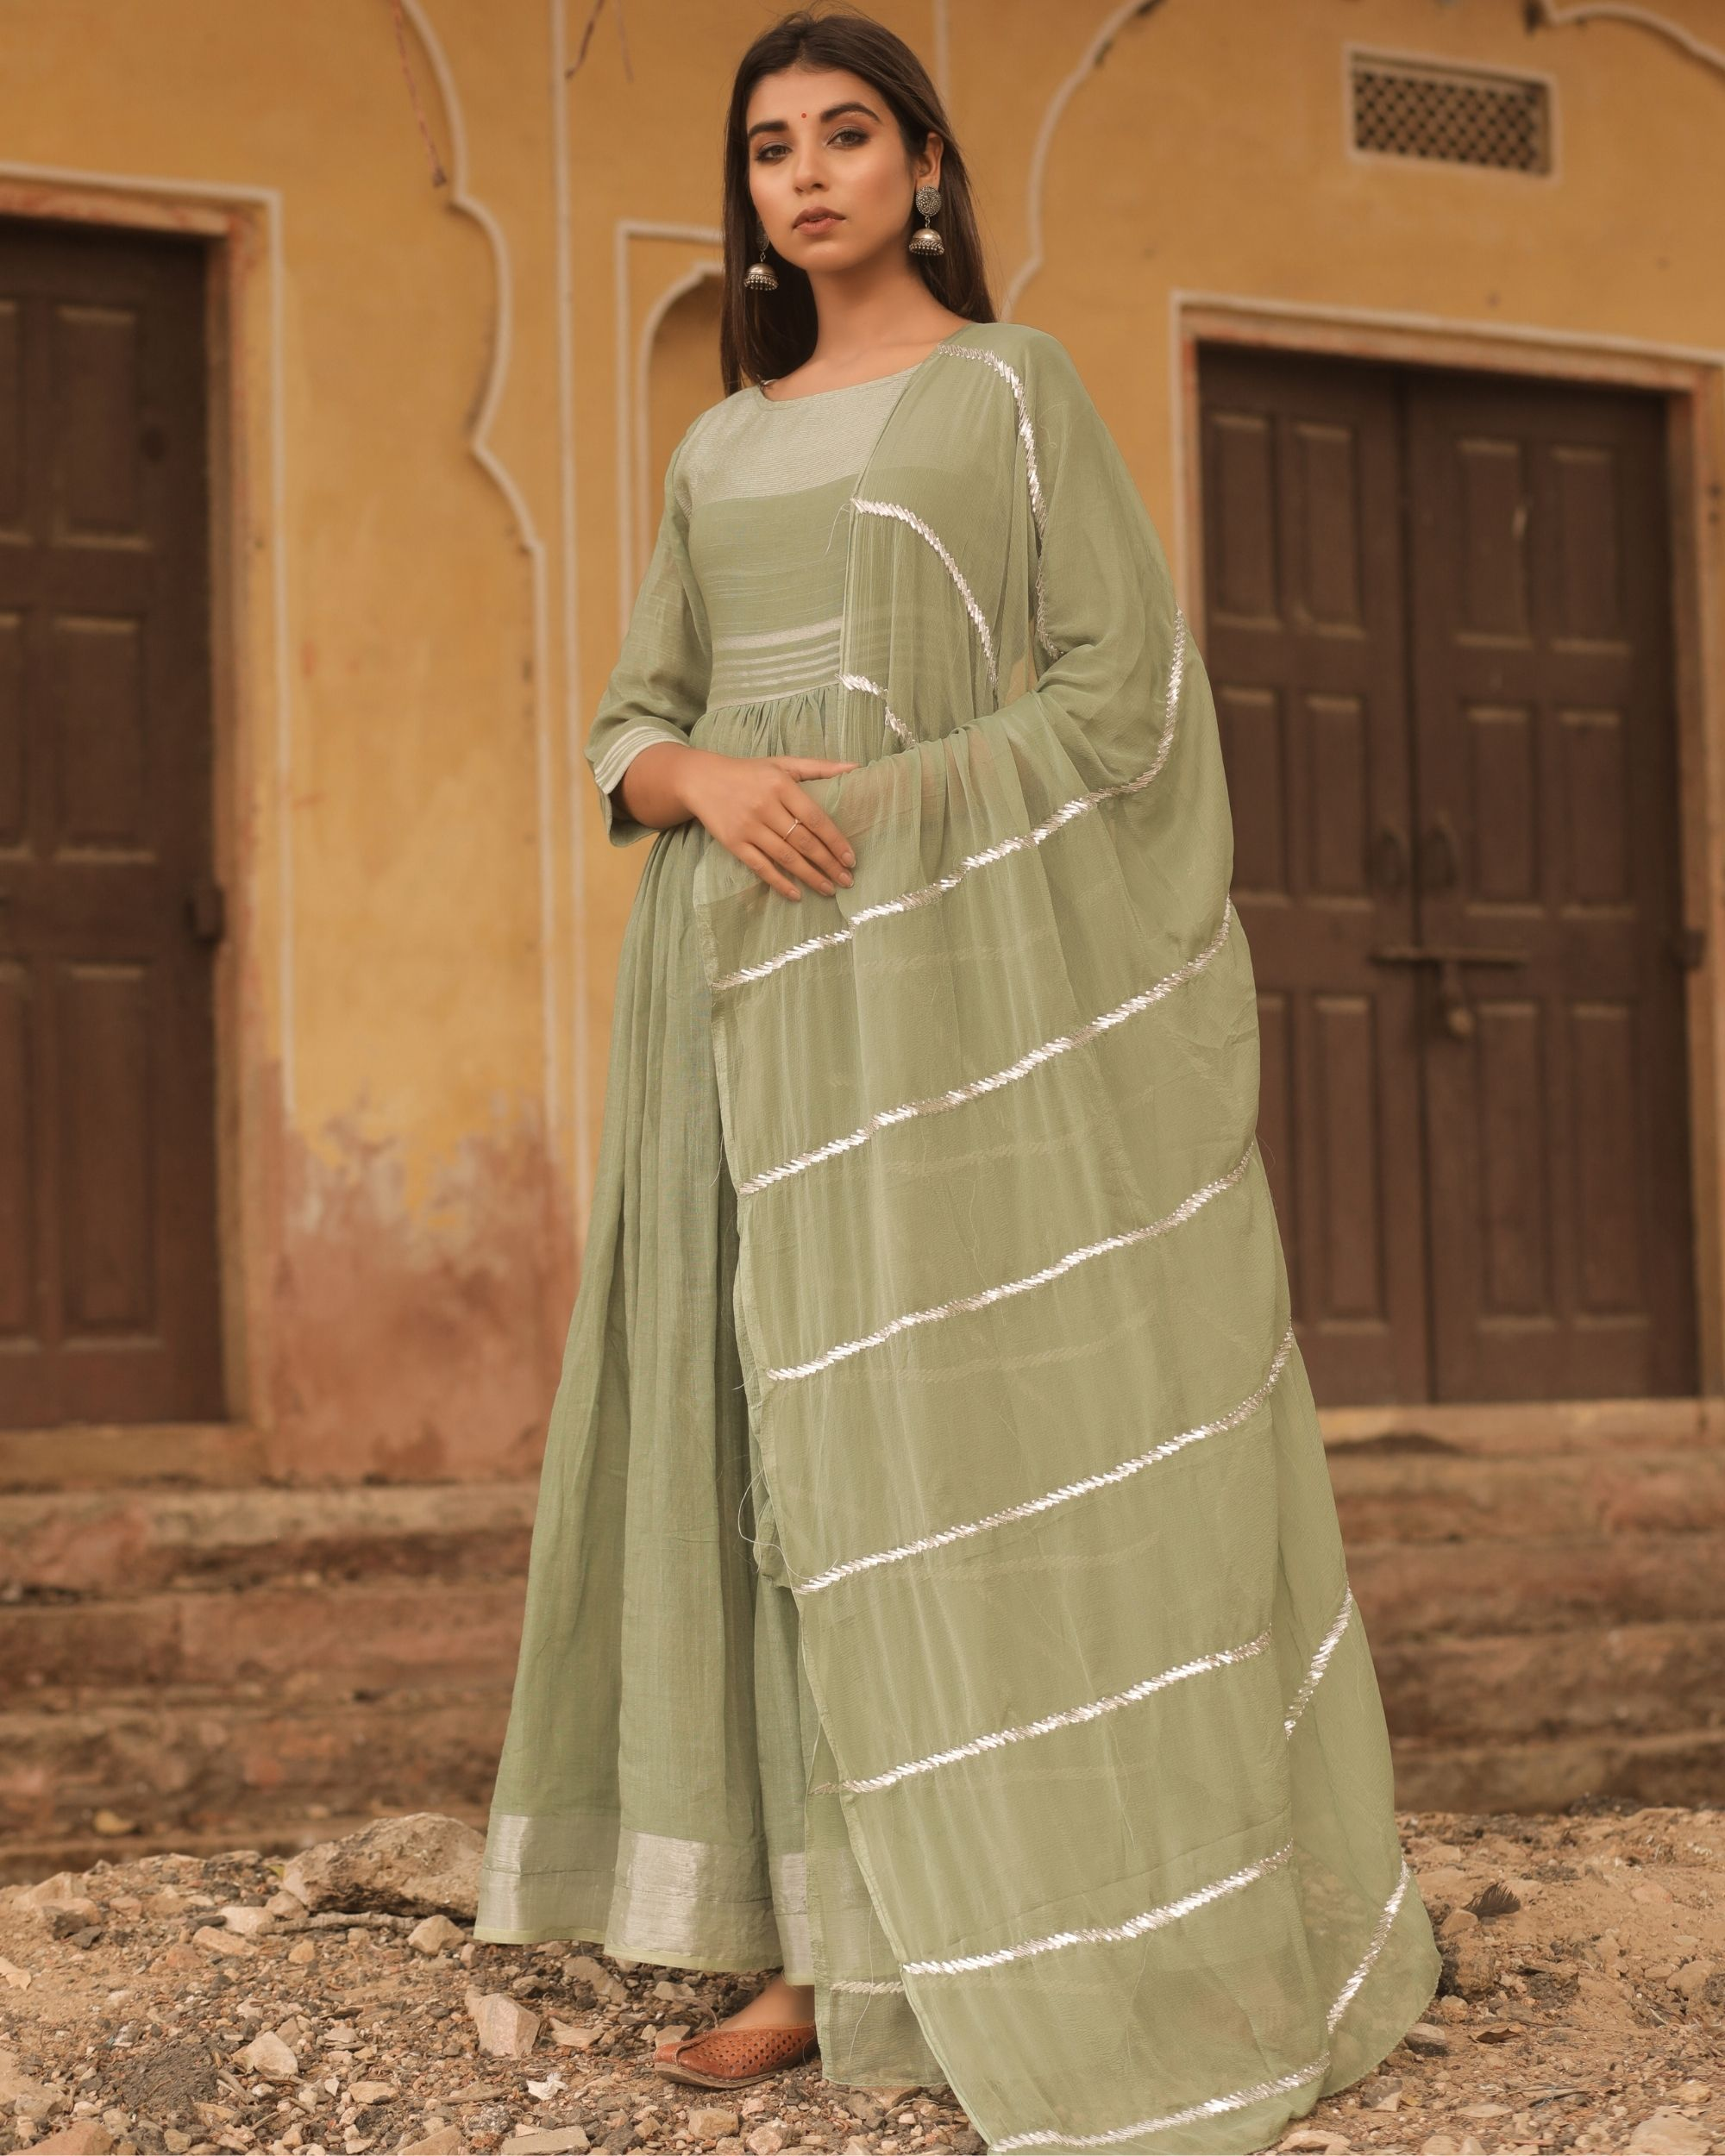 Olive linen dress with dupatta - set of two